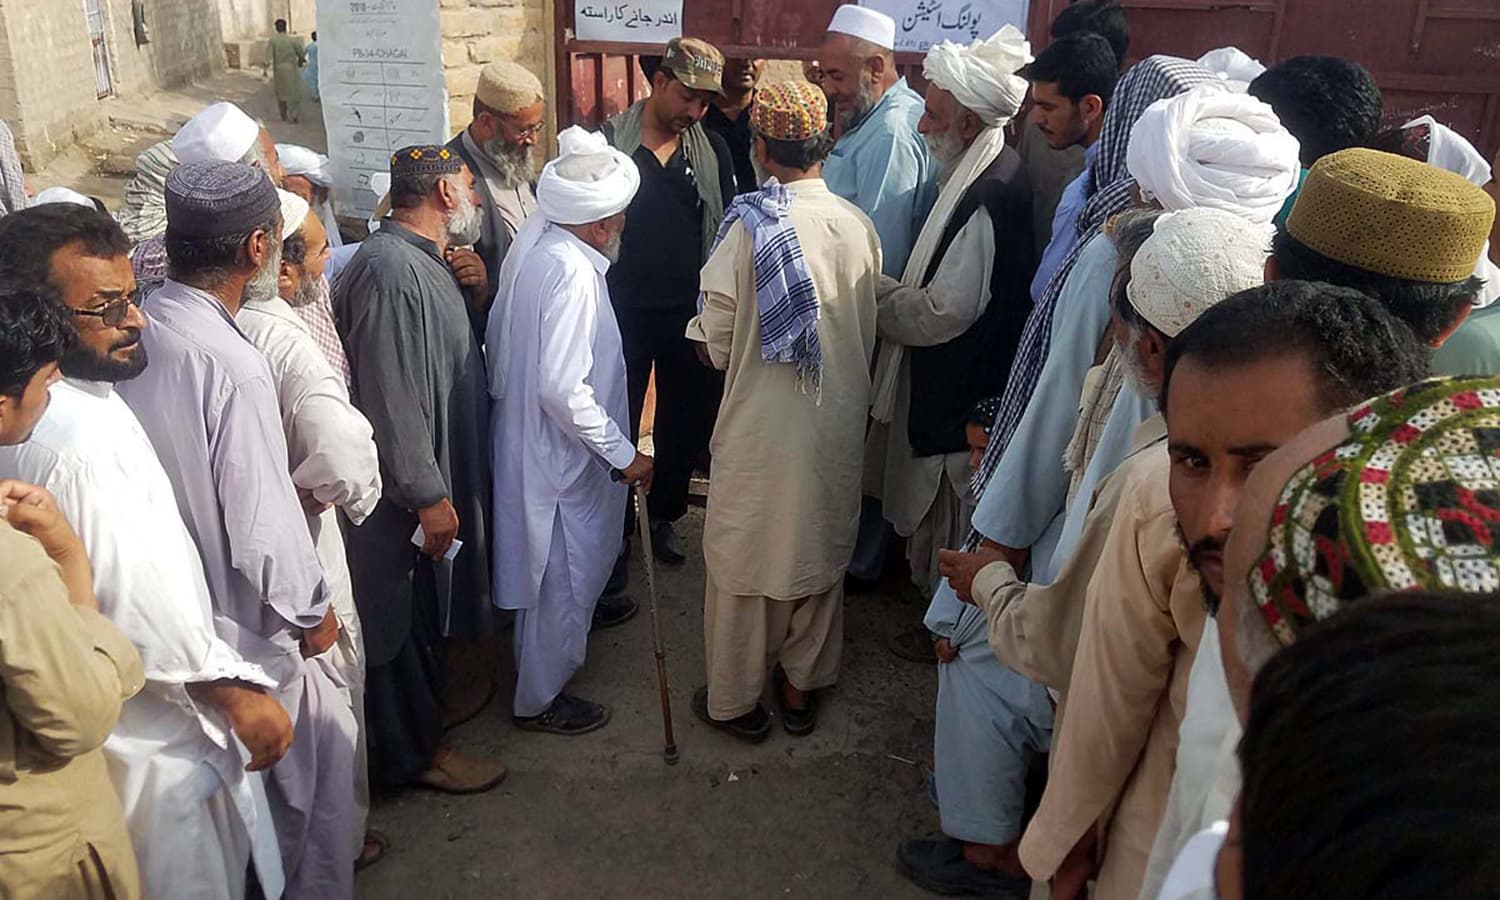 Voters stand in a queue outside a polling station in Balochistan's Dalbandin area to cast their ballots. — APP